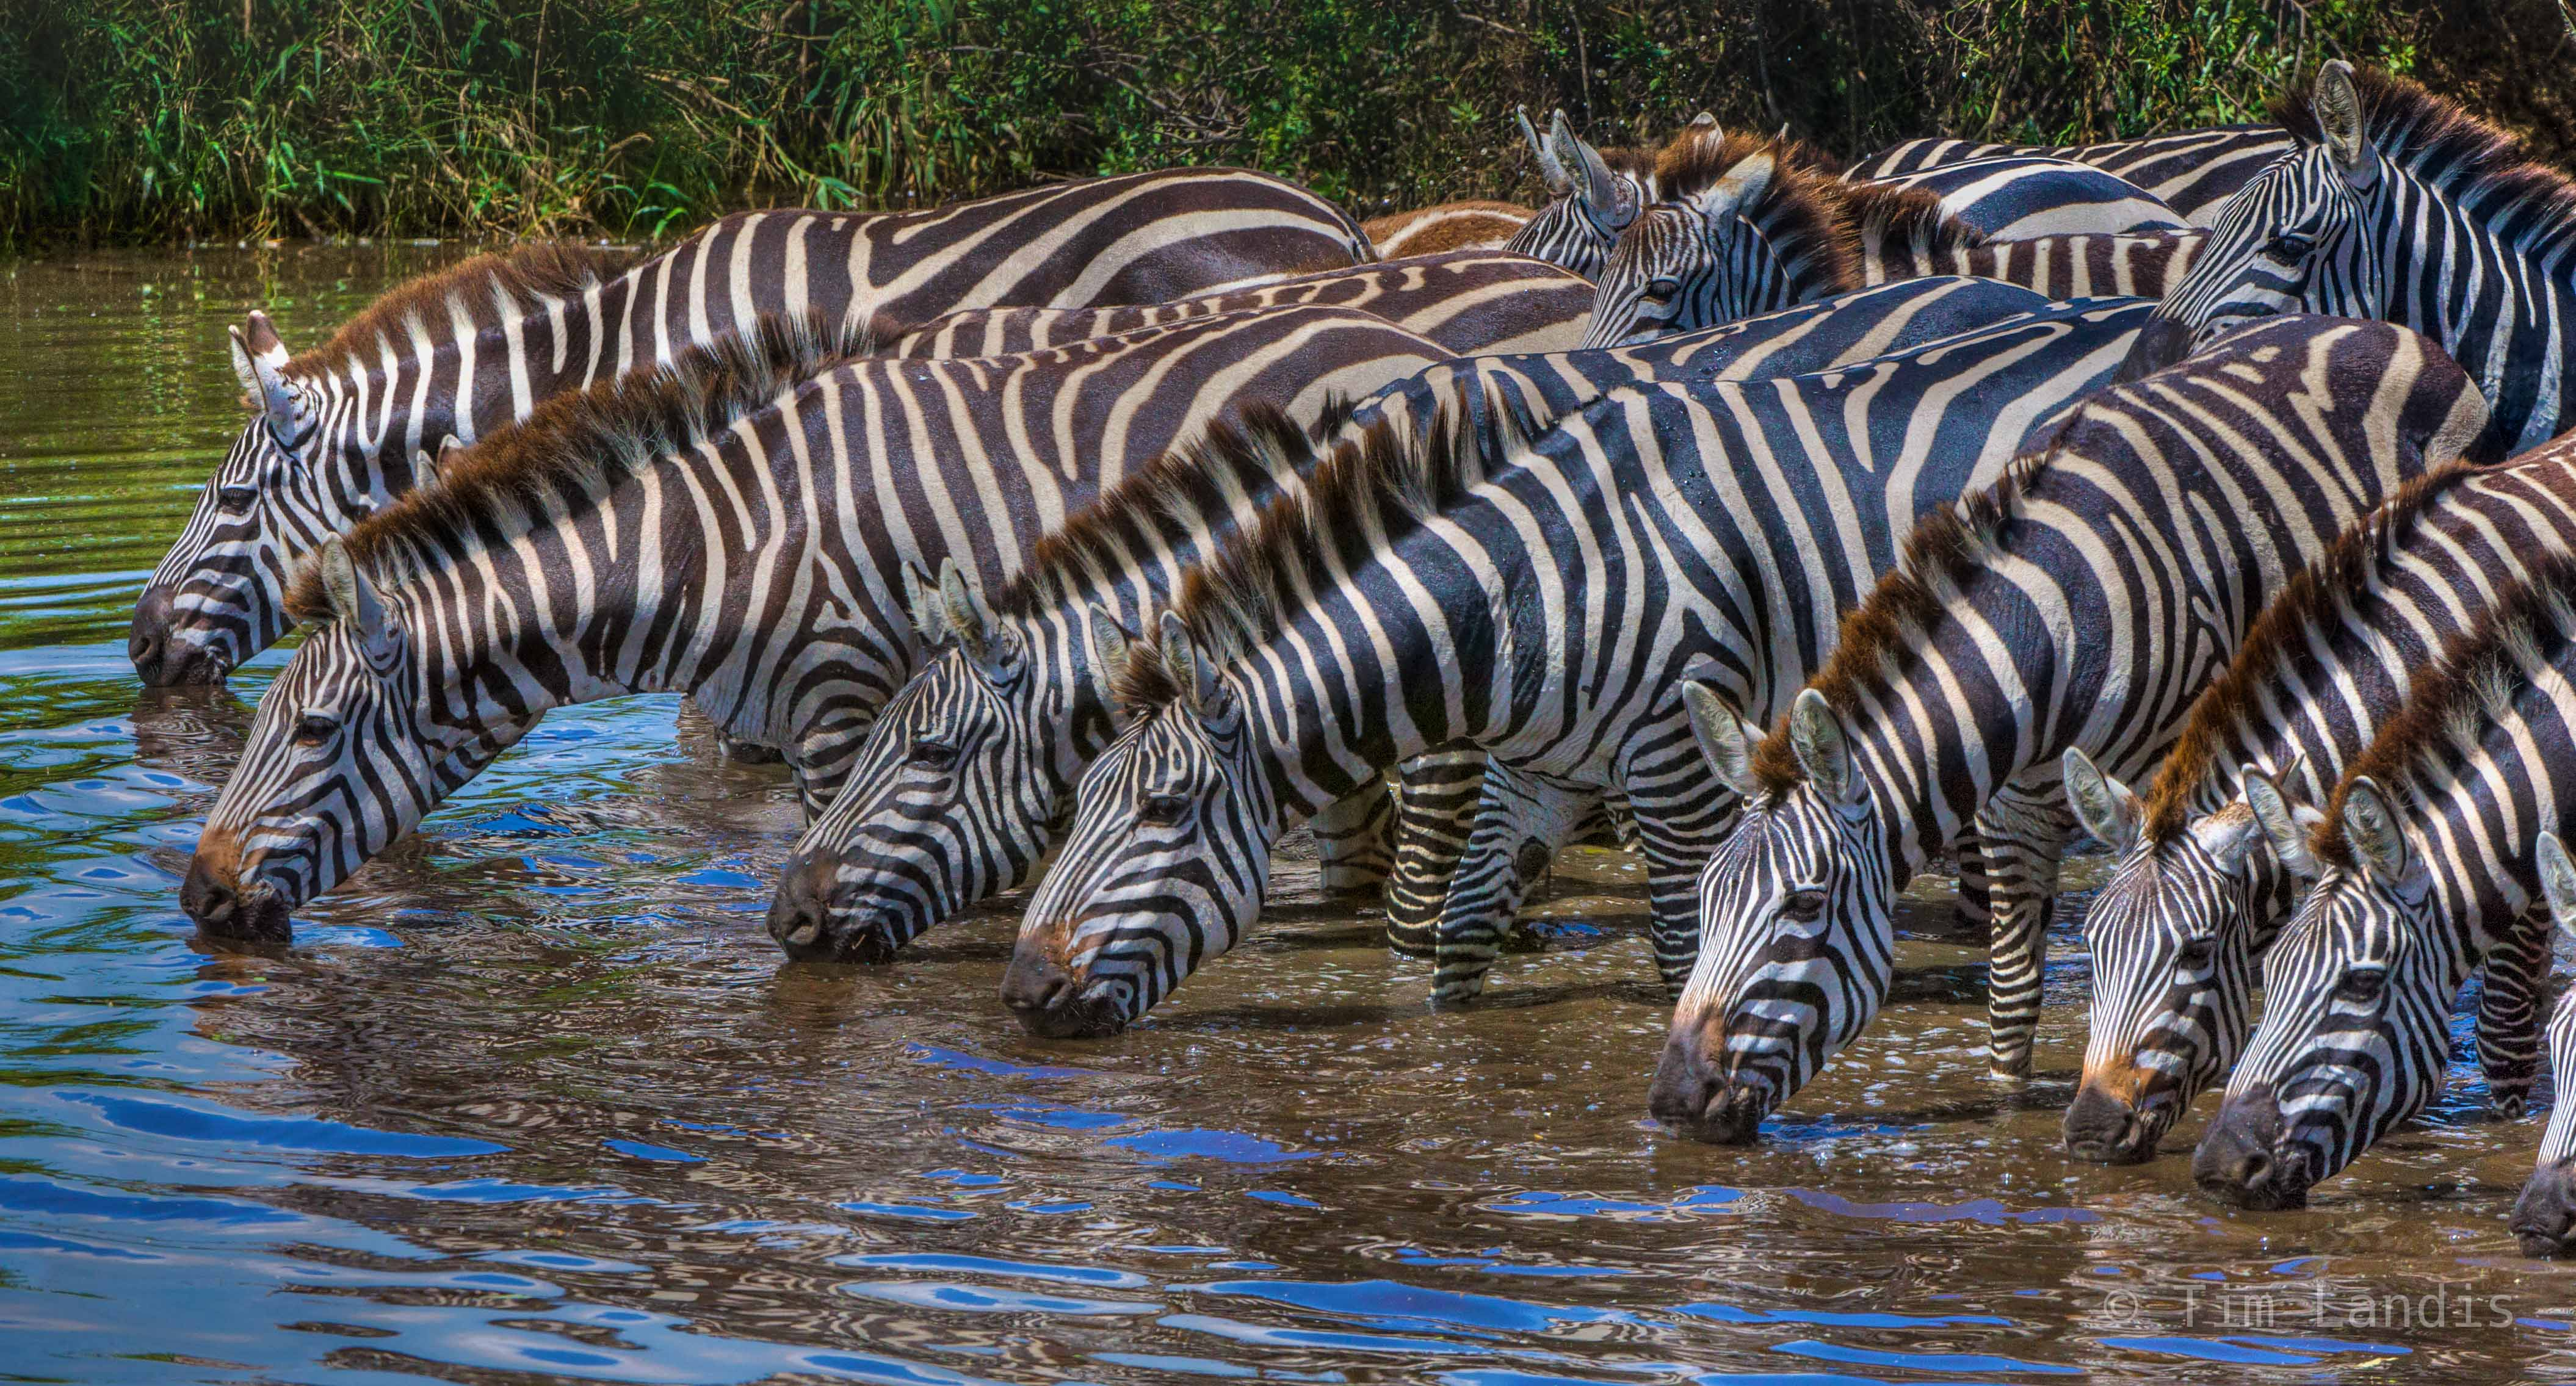 Cool water for thirsty zebras, , photo